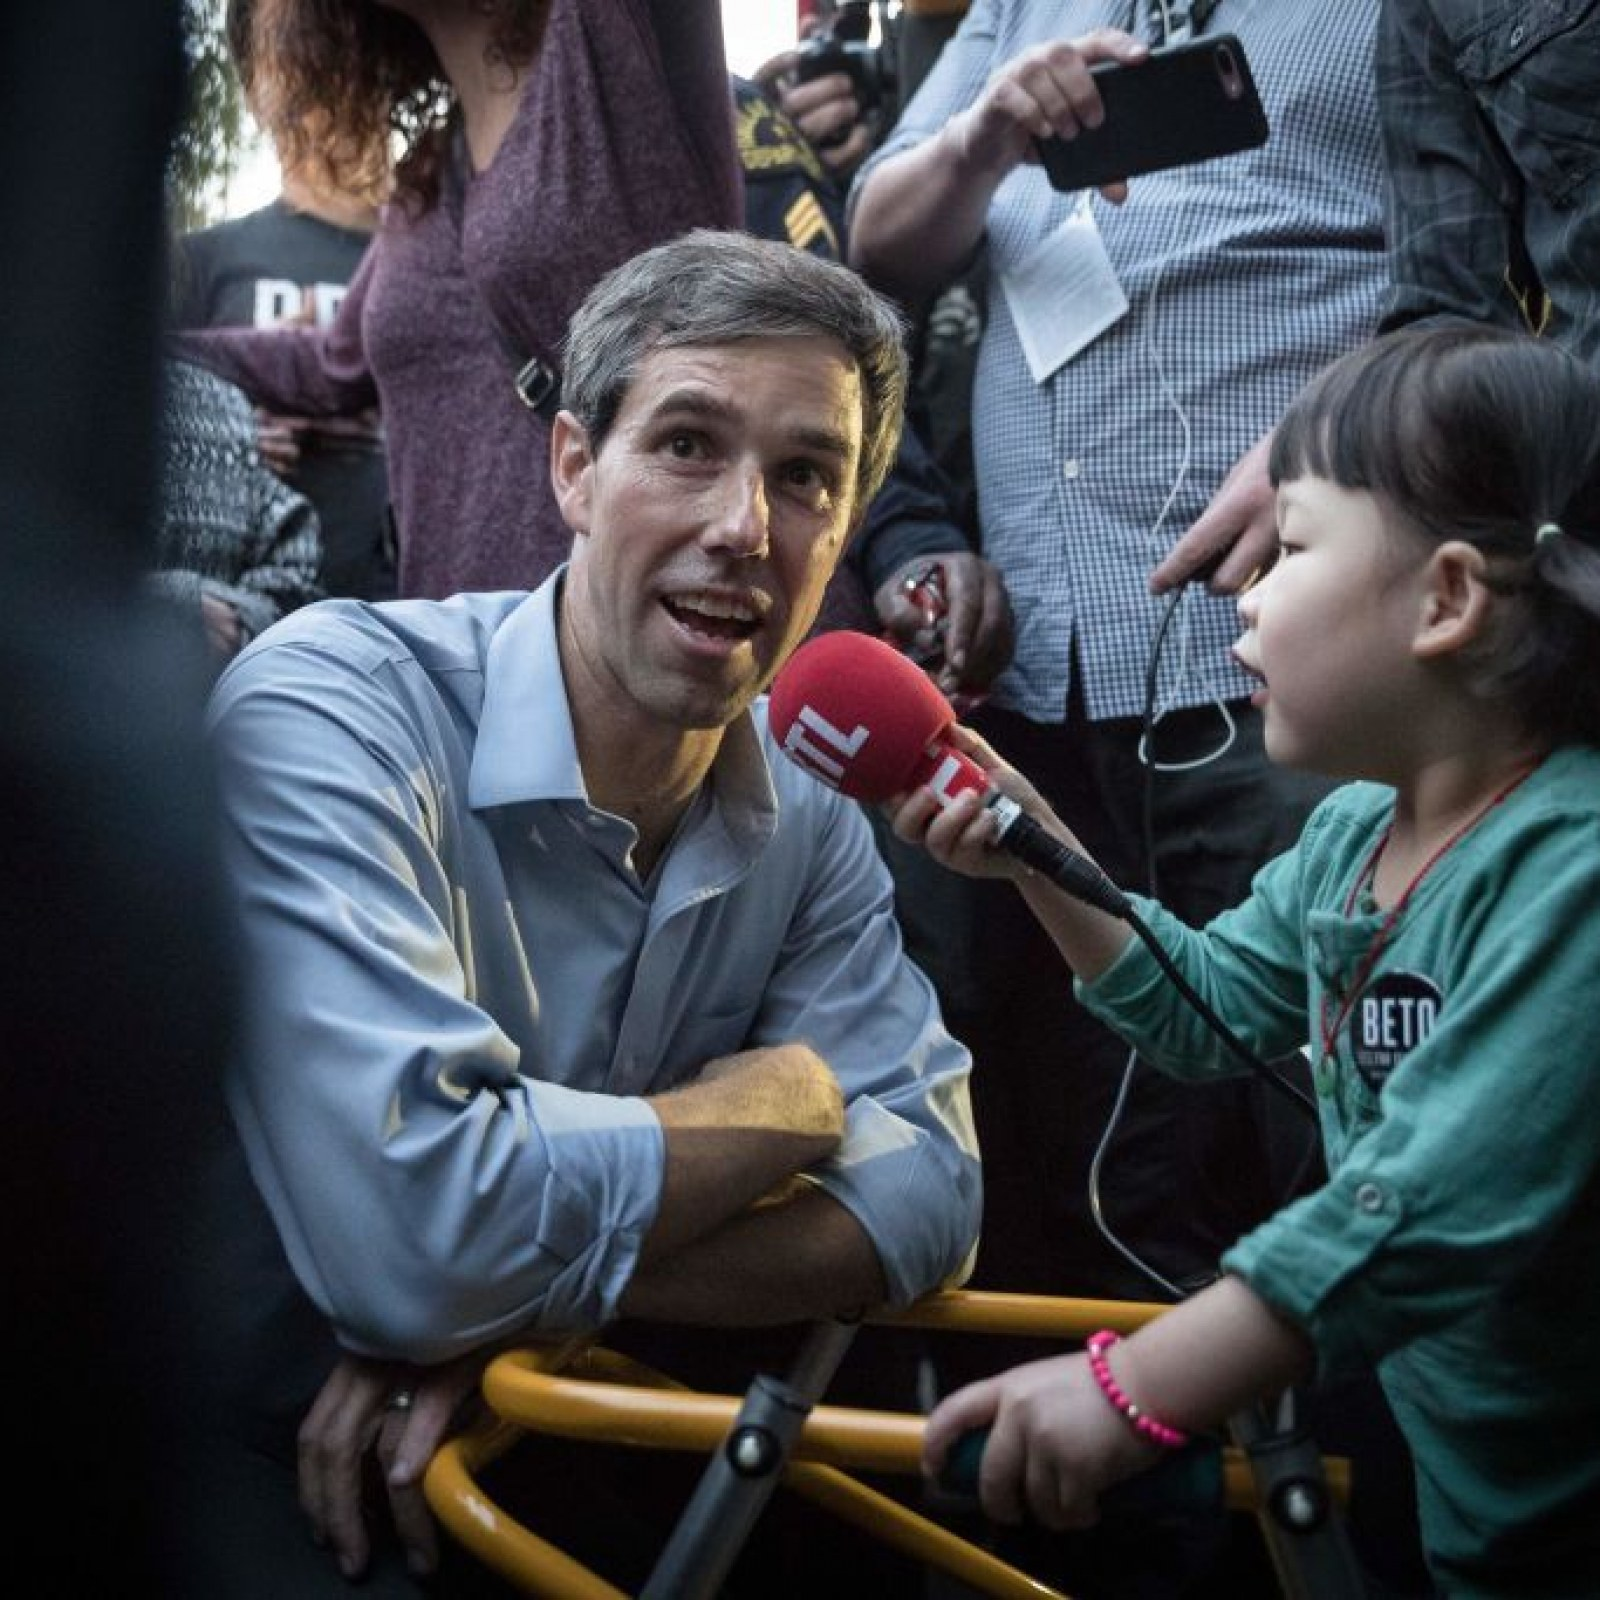 Beto O'Rourke Ignores Trump's Attacks to 'Stay Focused on